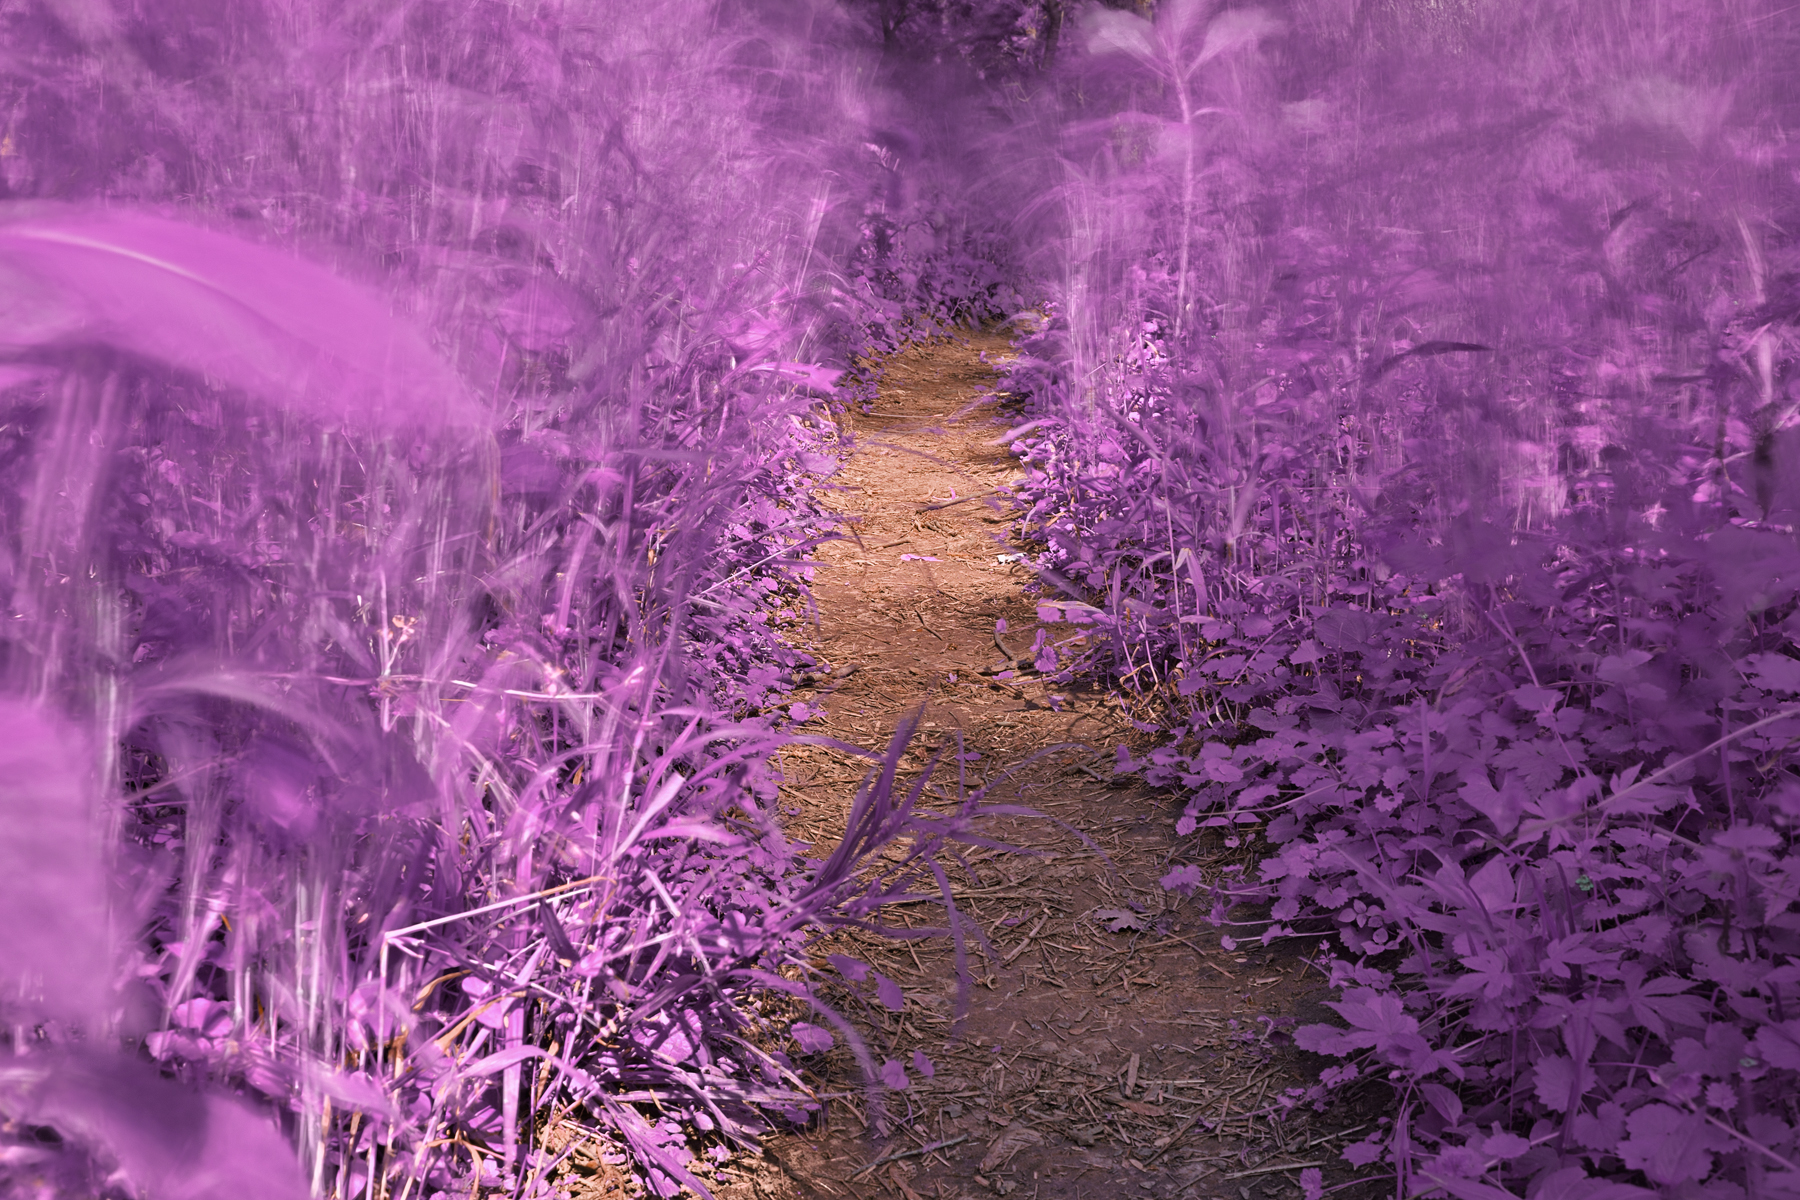 Windy goose creek trail - lavender fantasy hdr photo